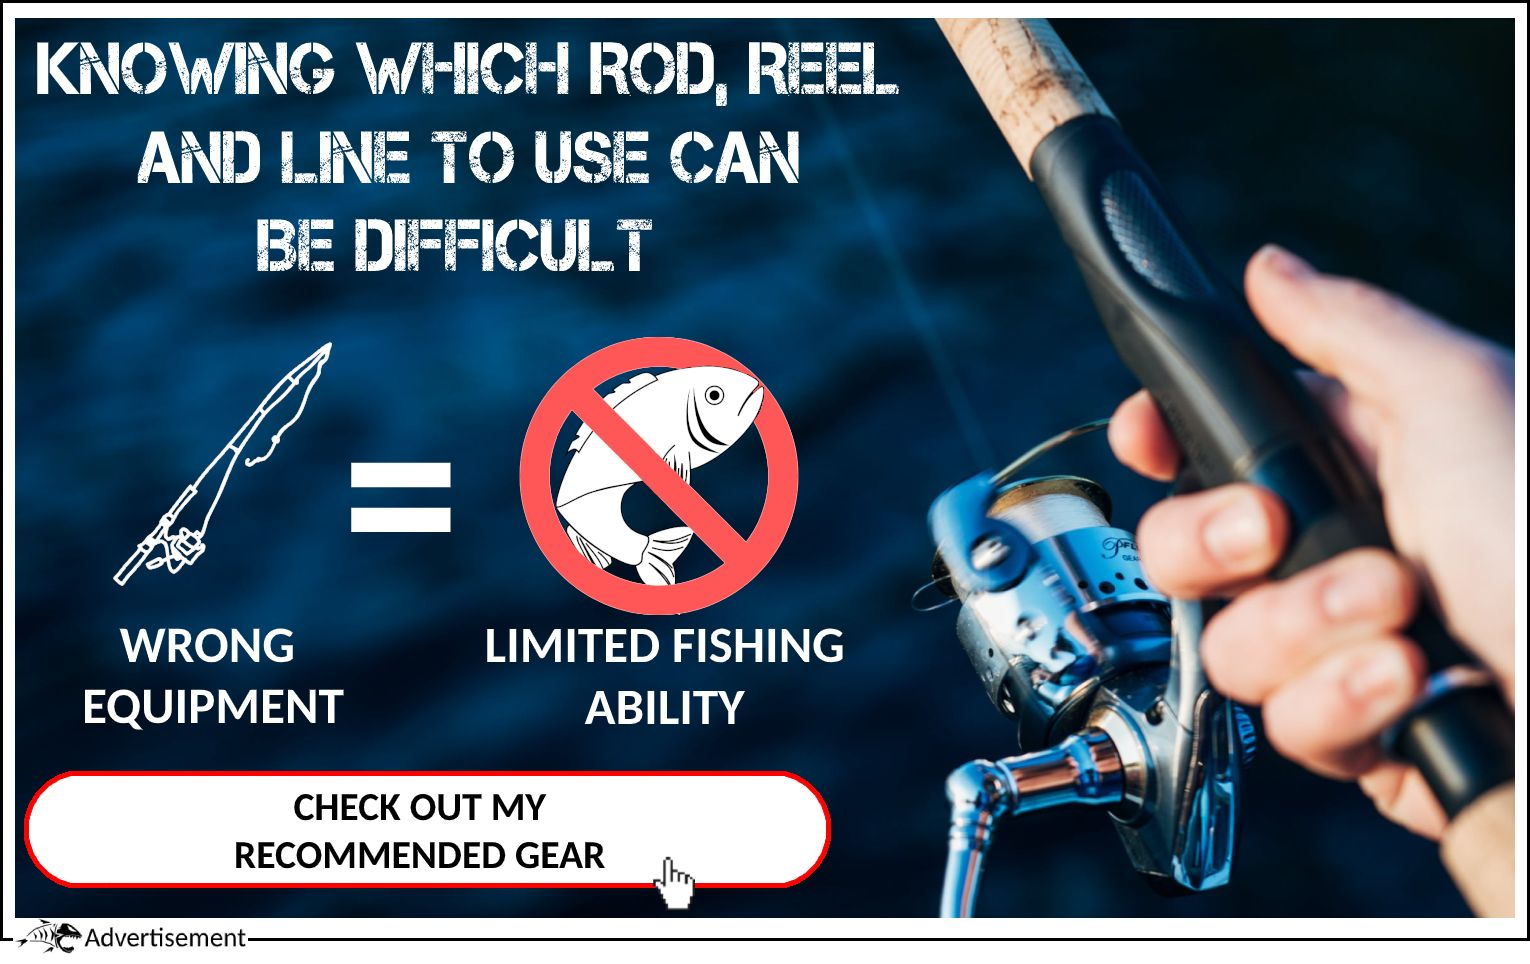 https://www.reelfm.com/pages/bass-fishing-bass-fishing-gear-recommendations